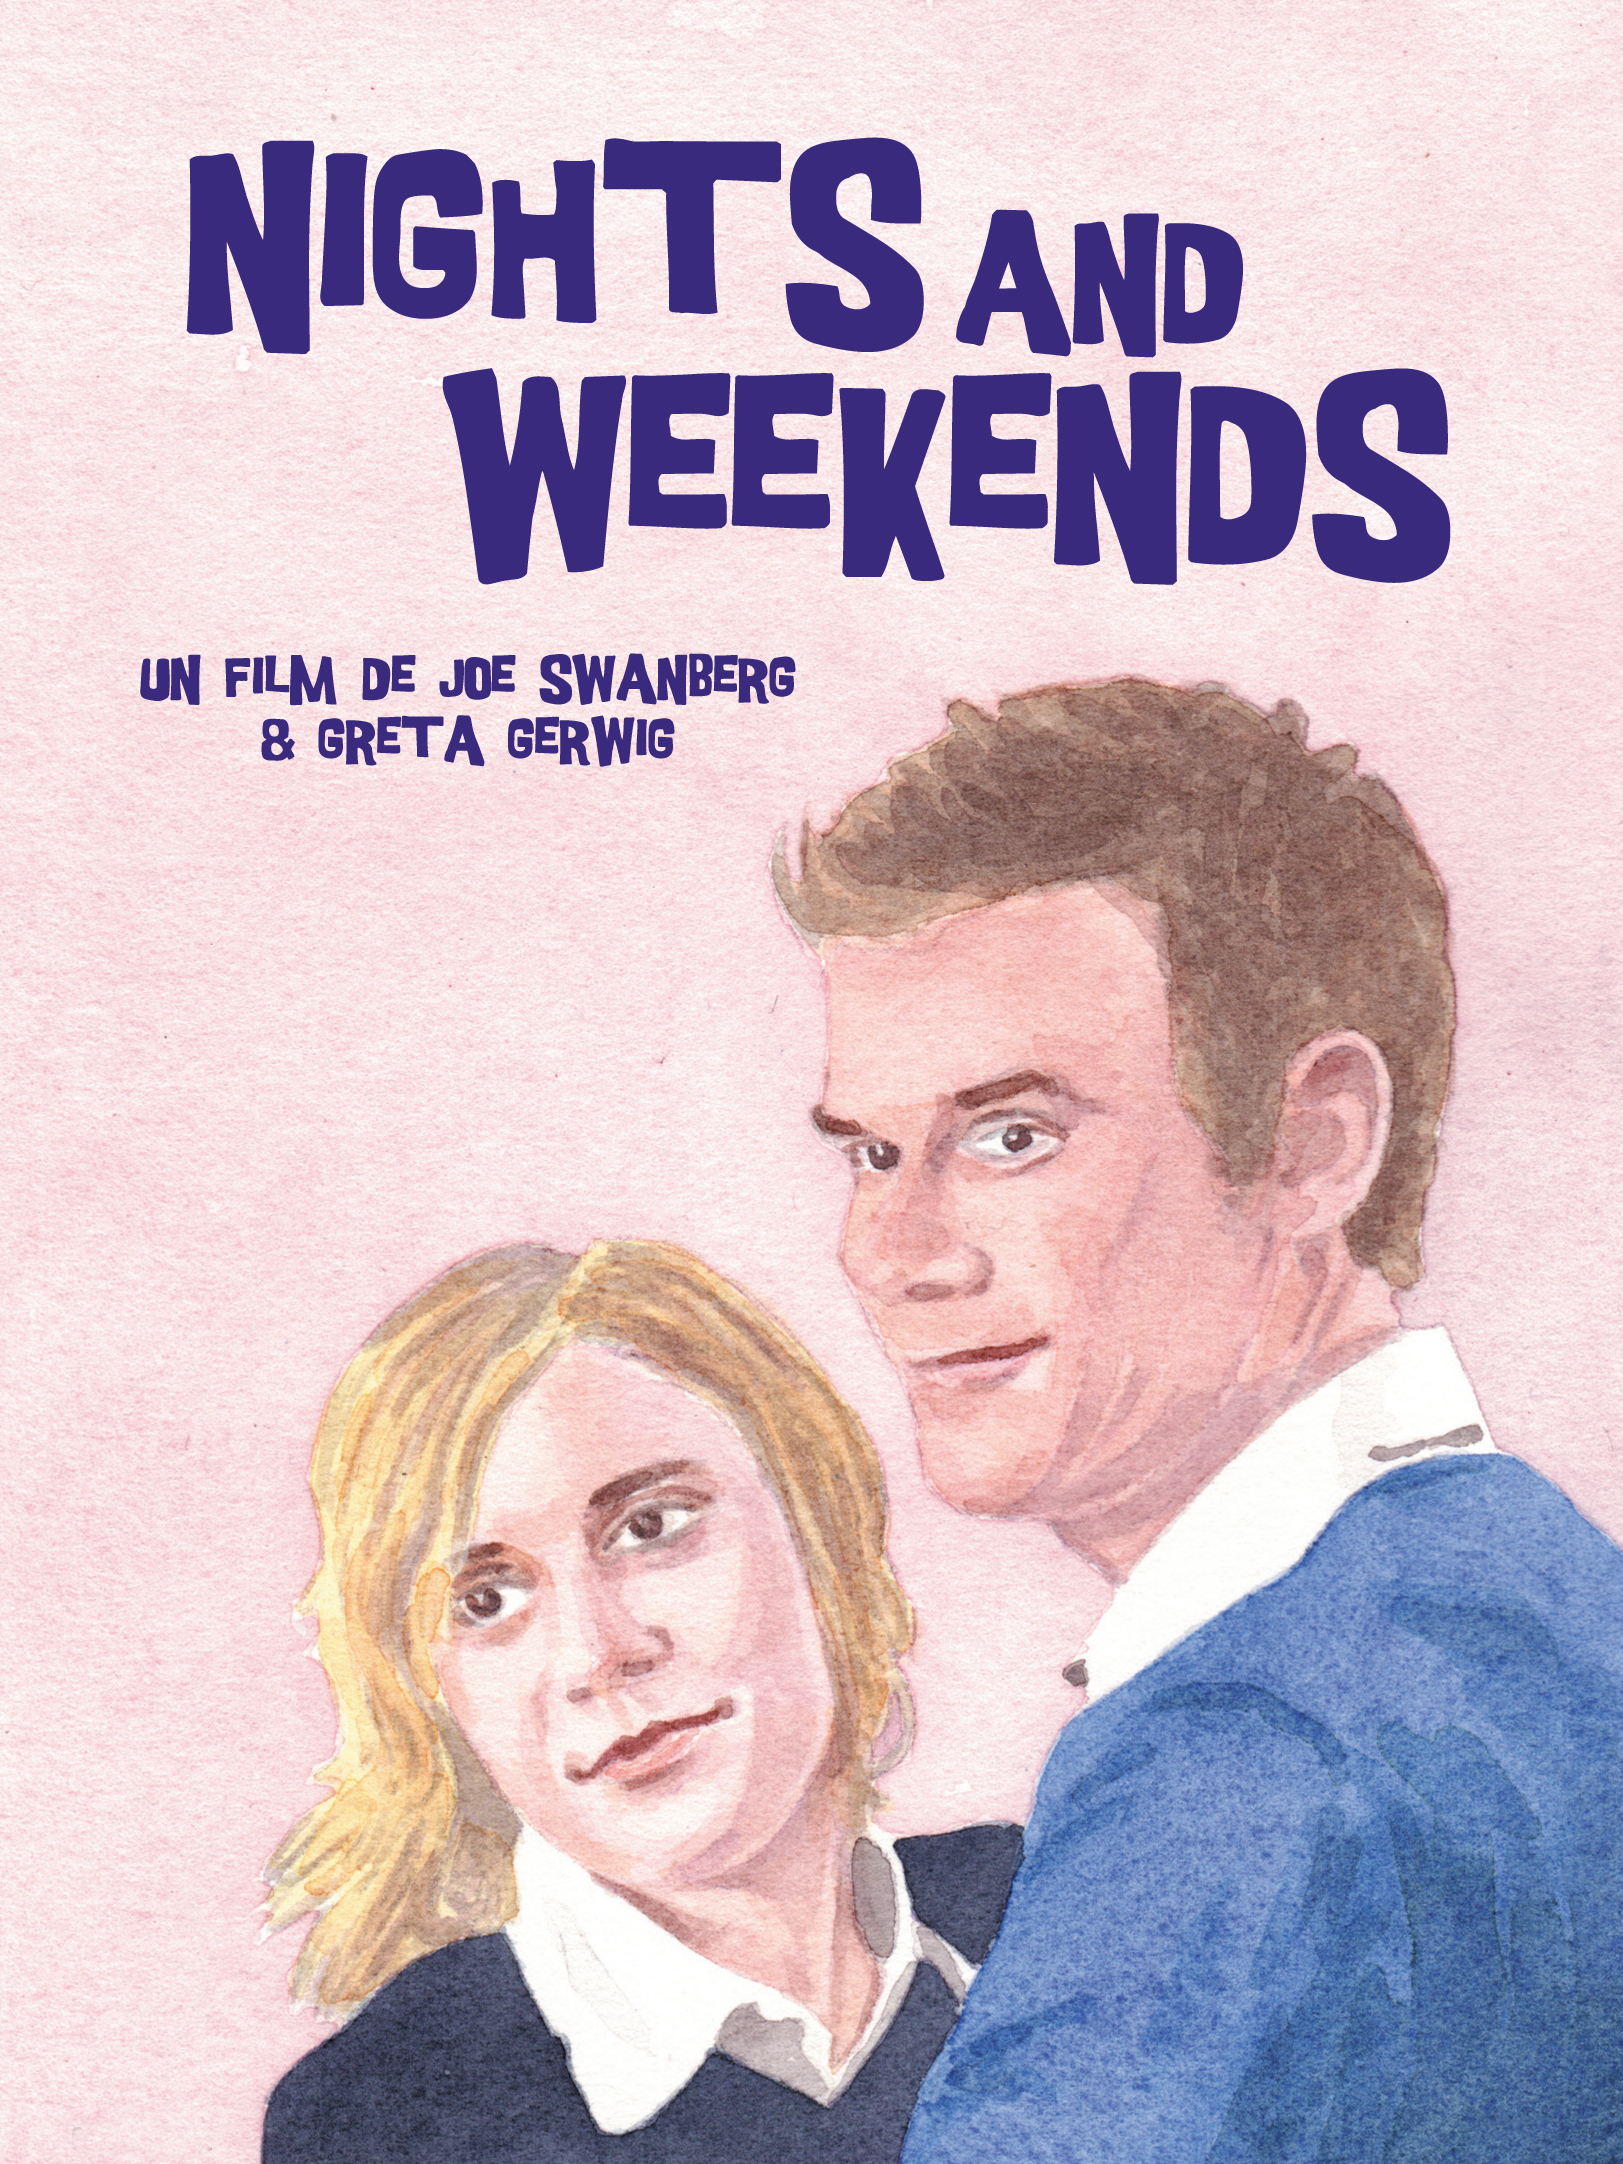 Nights and Weekends | Swanberg, Joe (Réalisateur)